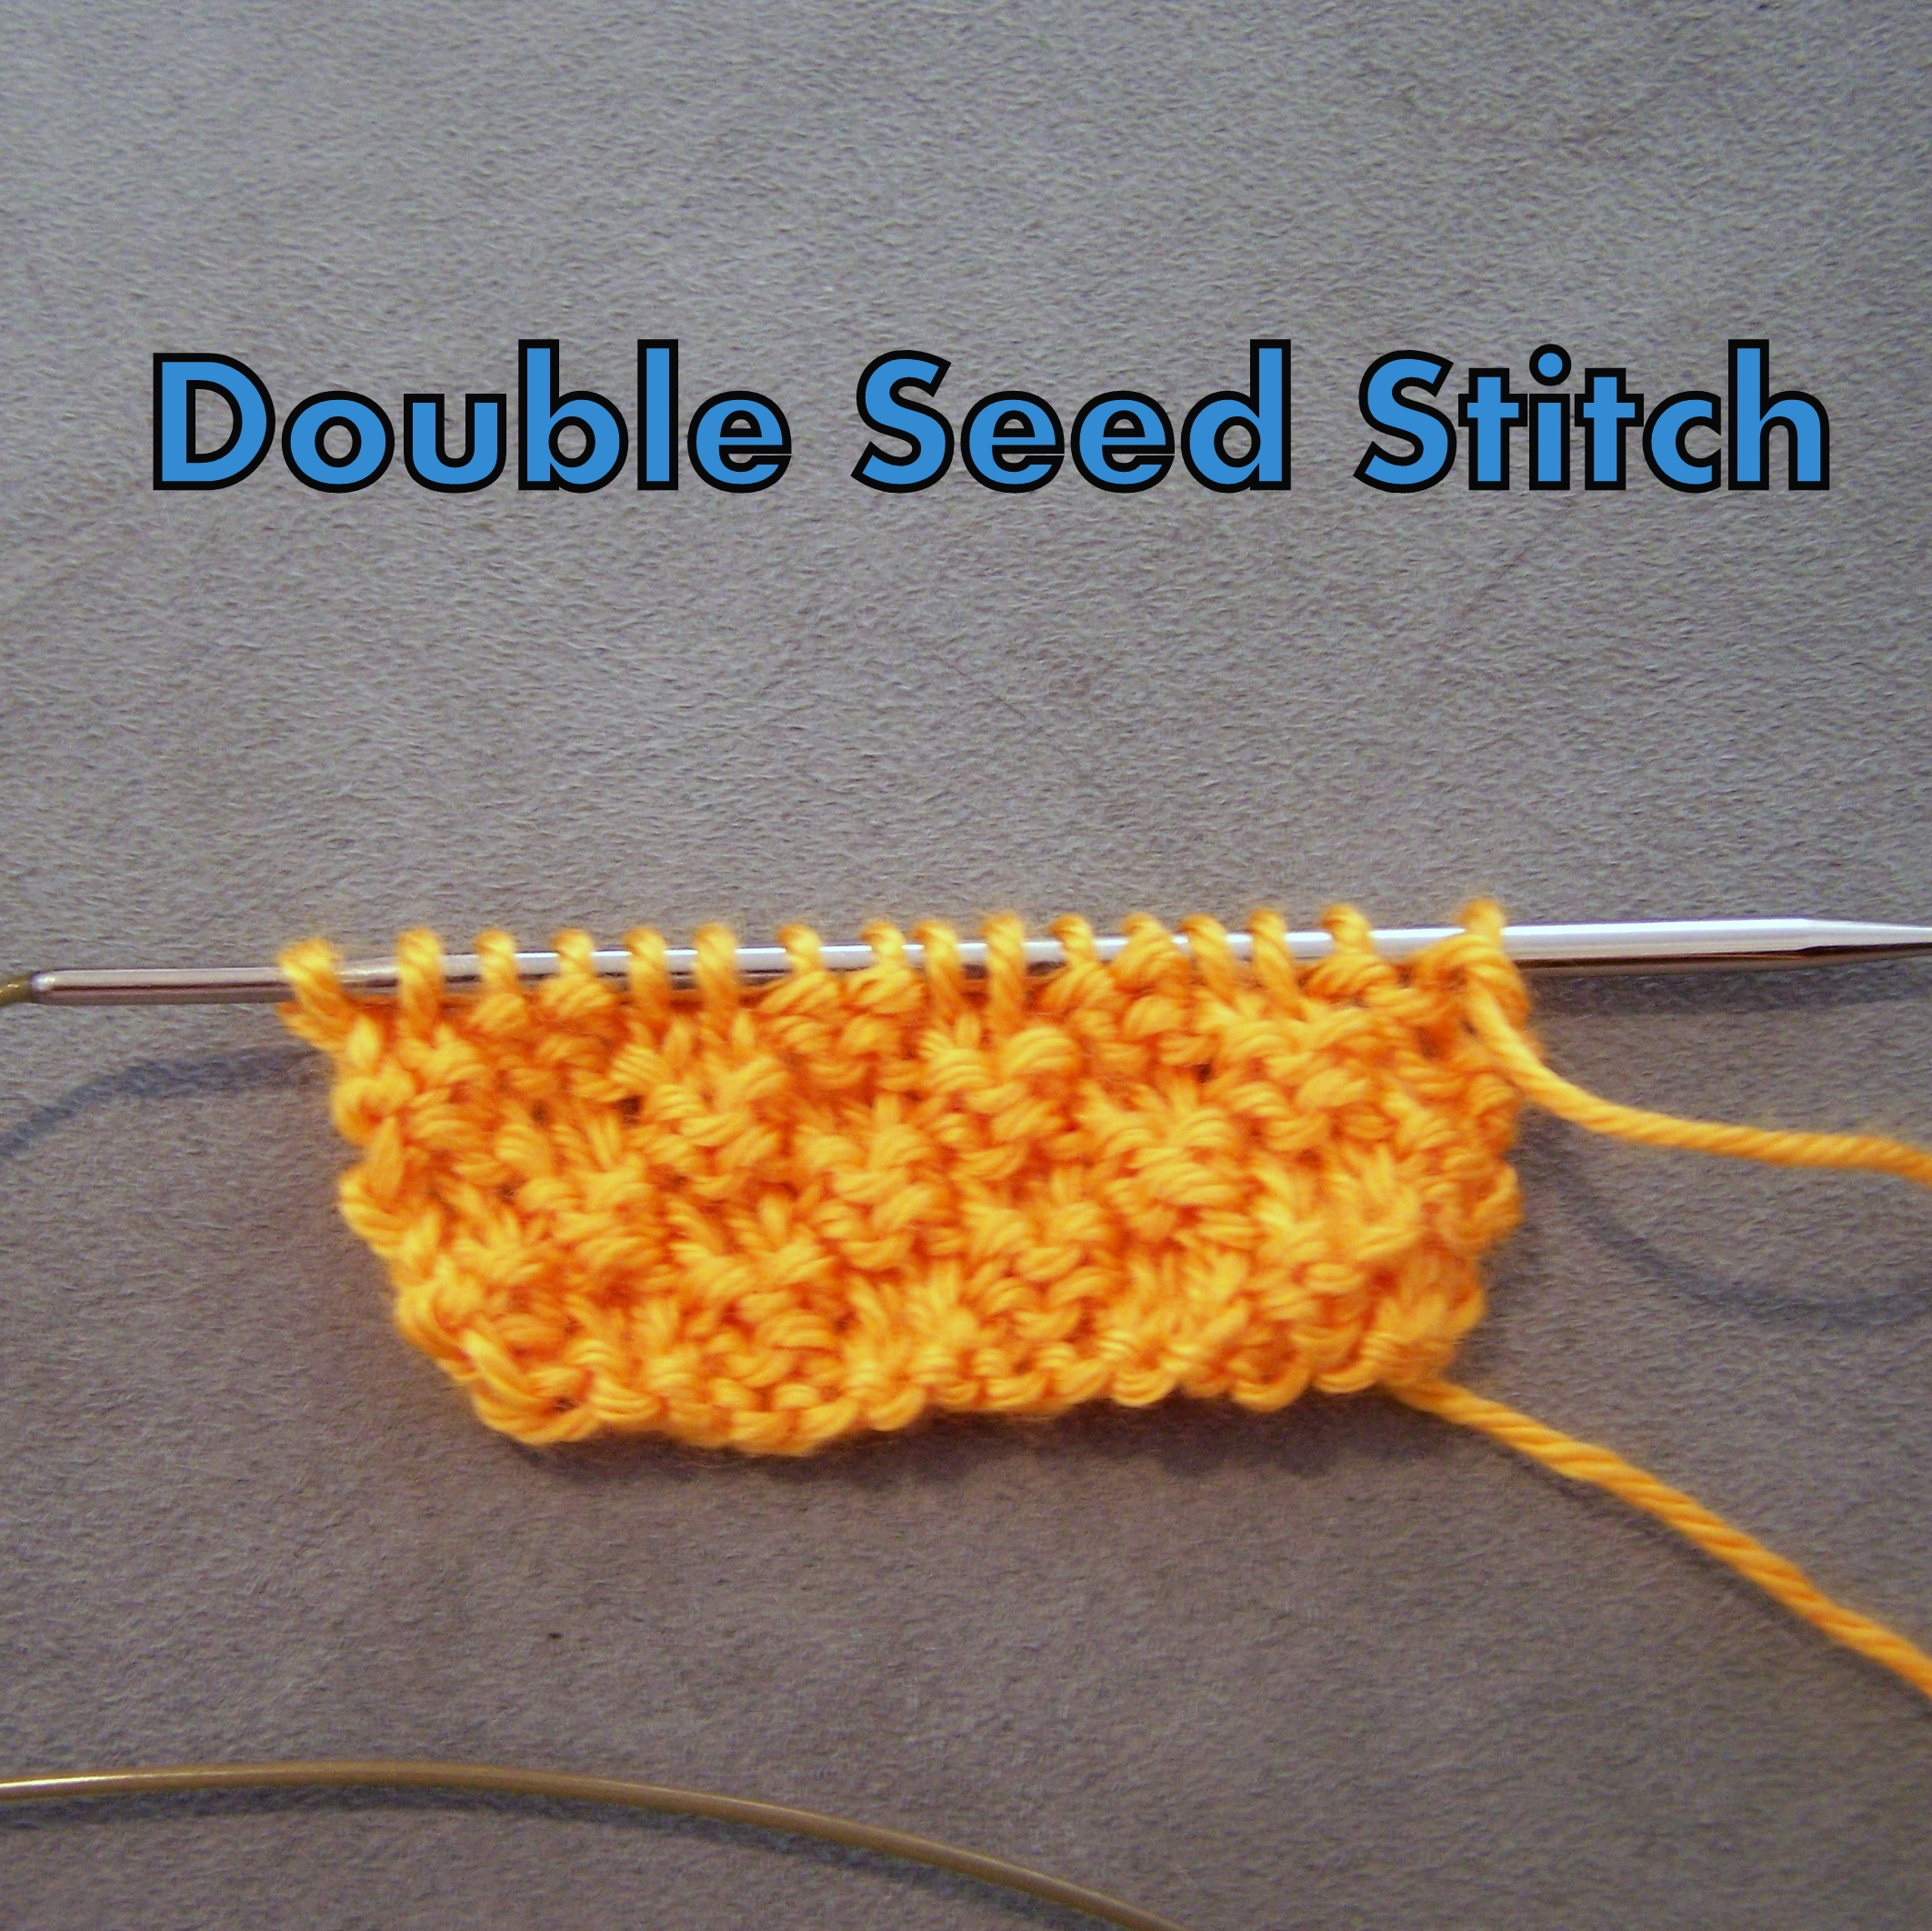 Double Seed Stitch Knitwerks